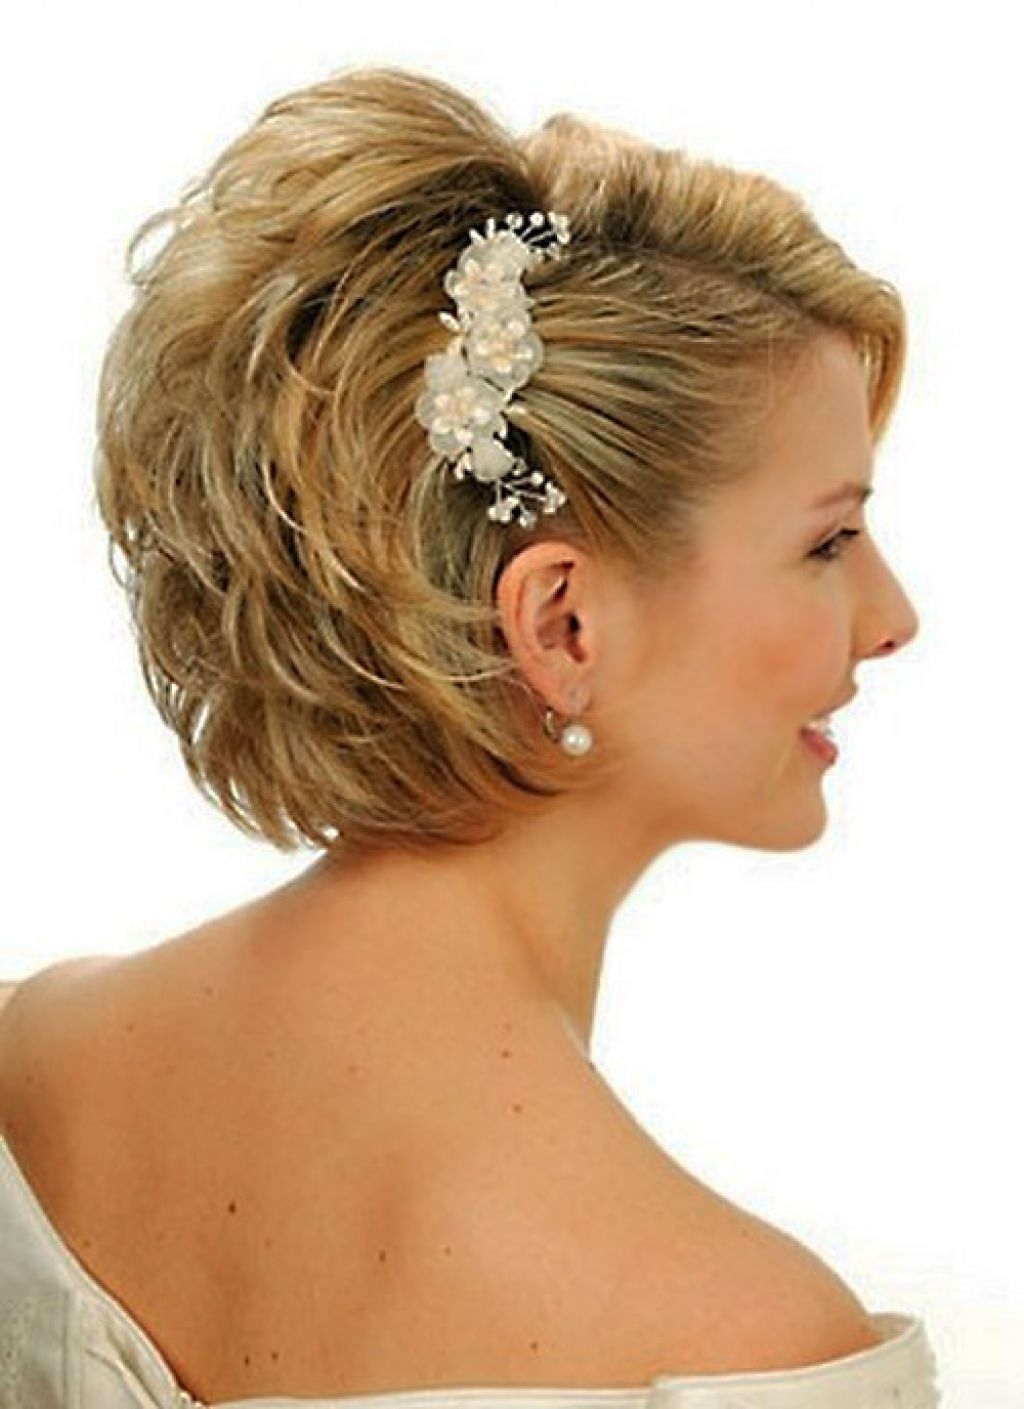 Classy Updo Hairstyles For Bridal Women – Popular Long Hairstyle Idea In Bridesmaid Hairstyles Updos For Short Hair (View 9 of 15)